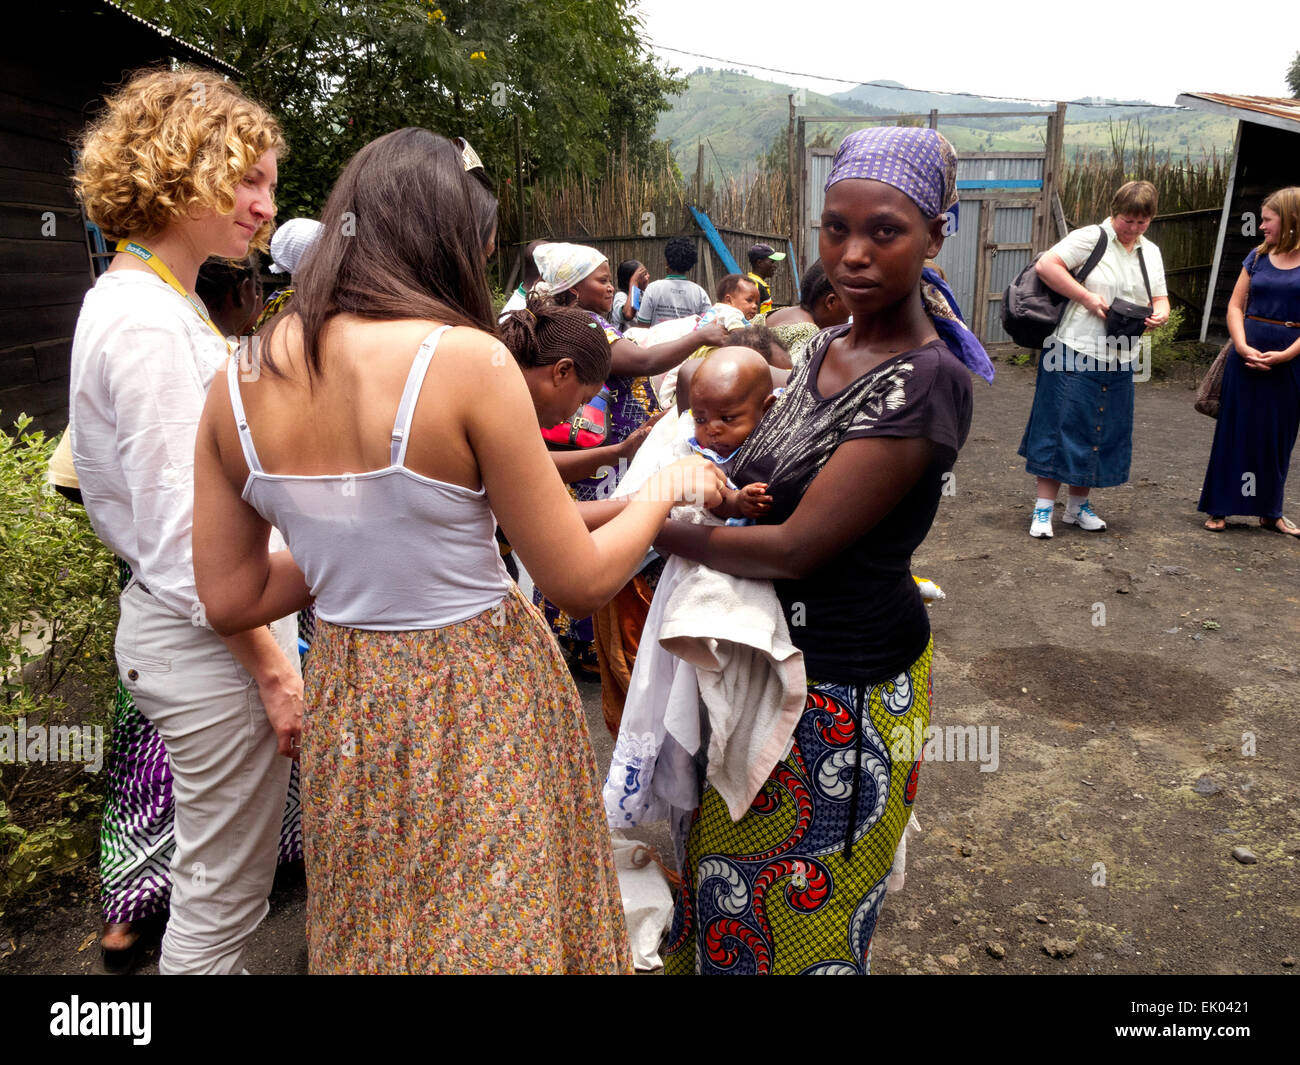 Western aid workers helping families at a charity health clinic, Goma, North Kivu, Democratic Republic of Congo - Stock Image